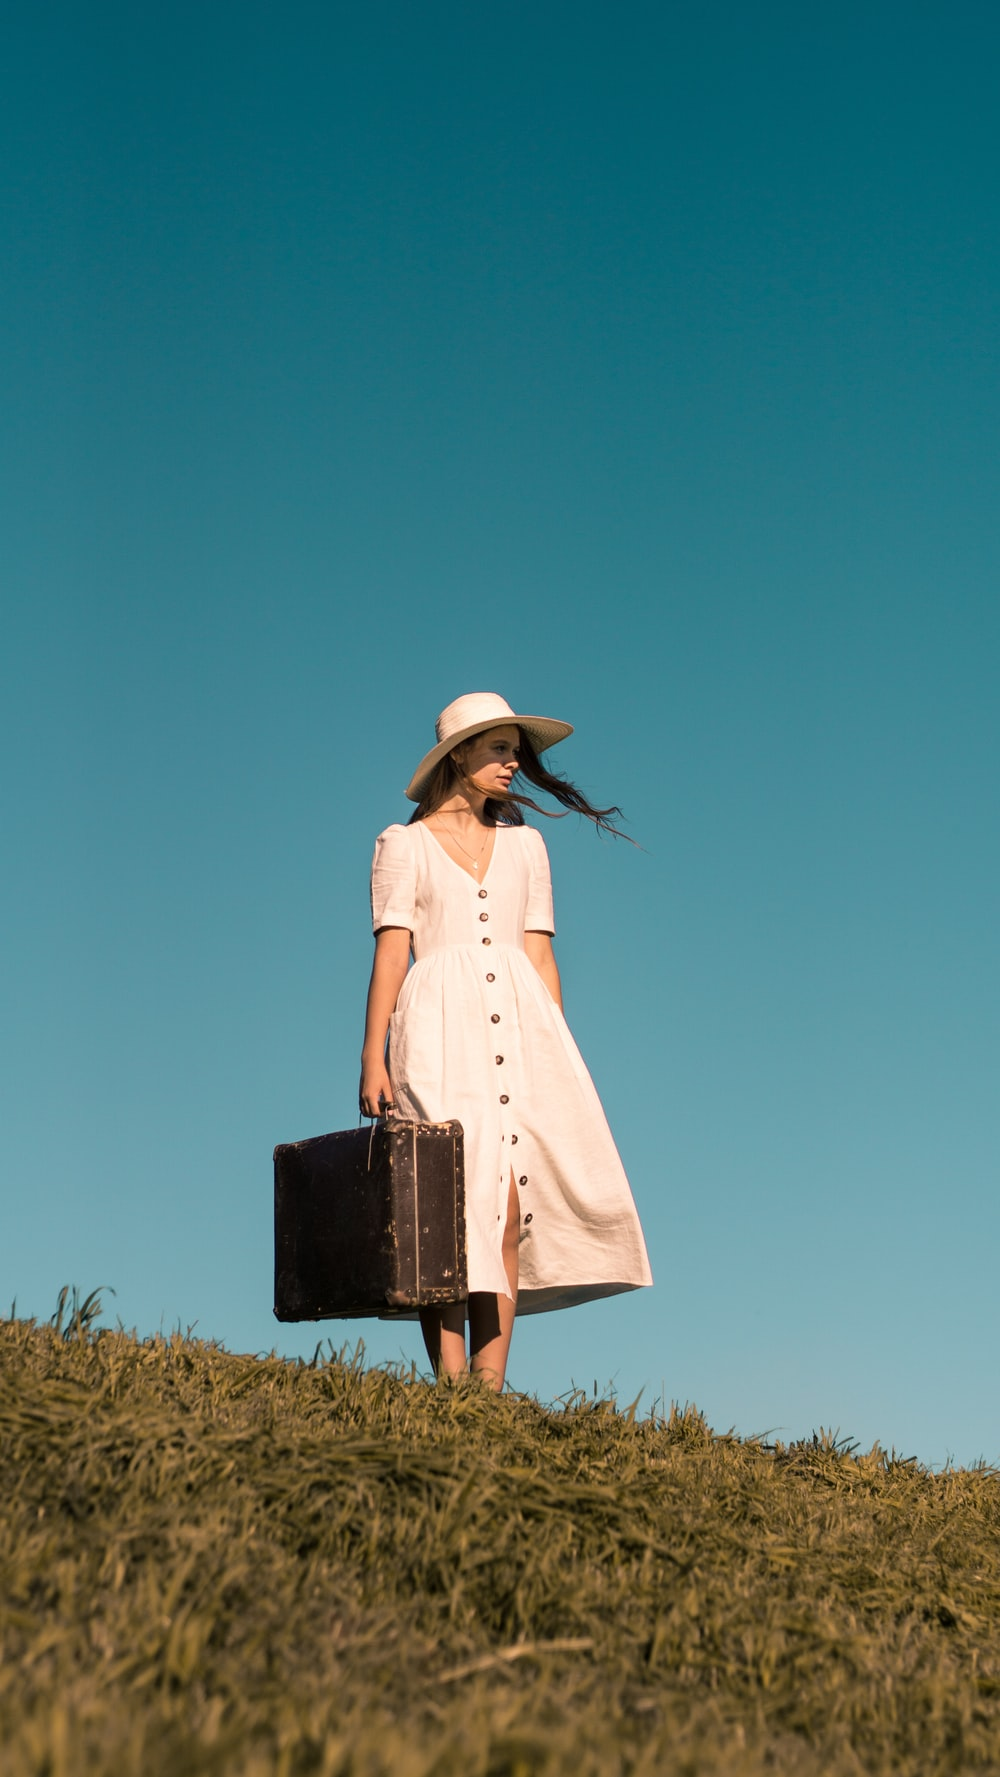 woman standing on green grass holding brown leather suitcase wearing white button-up dress